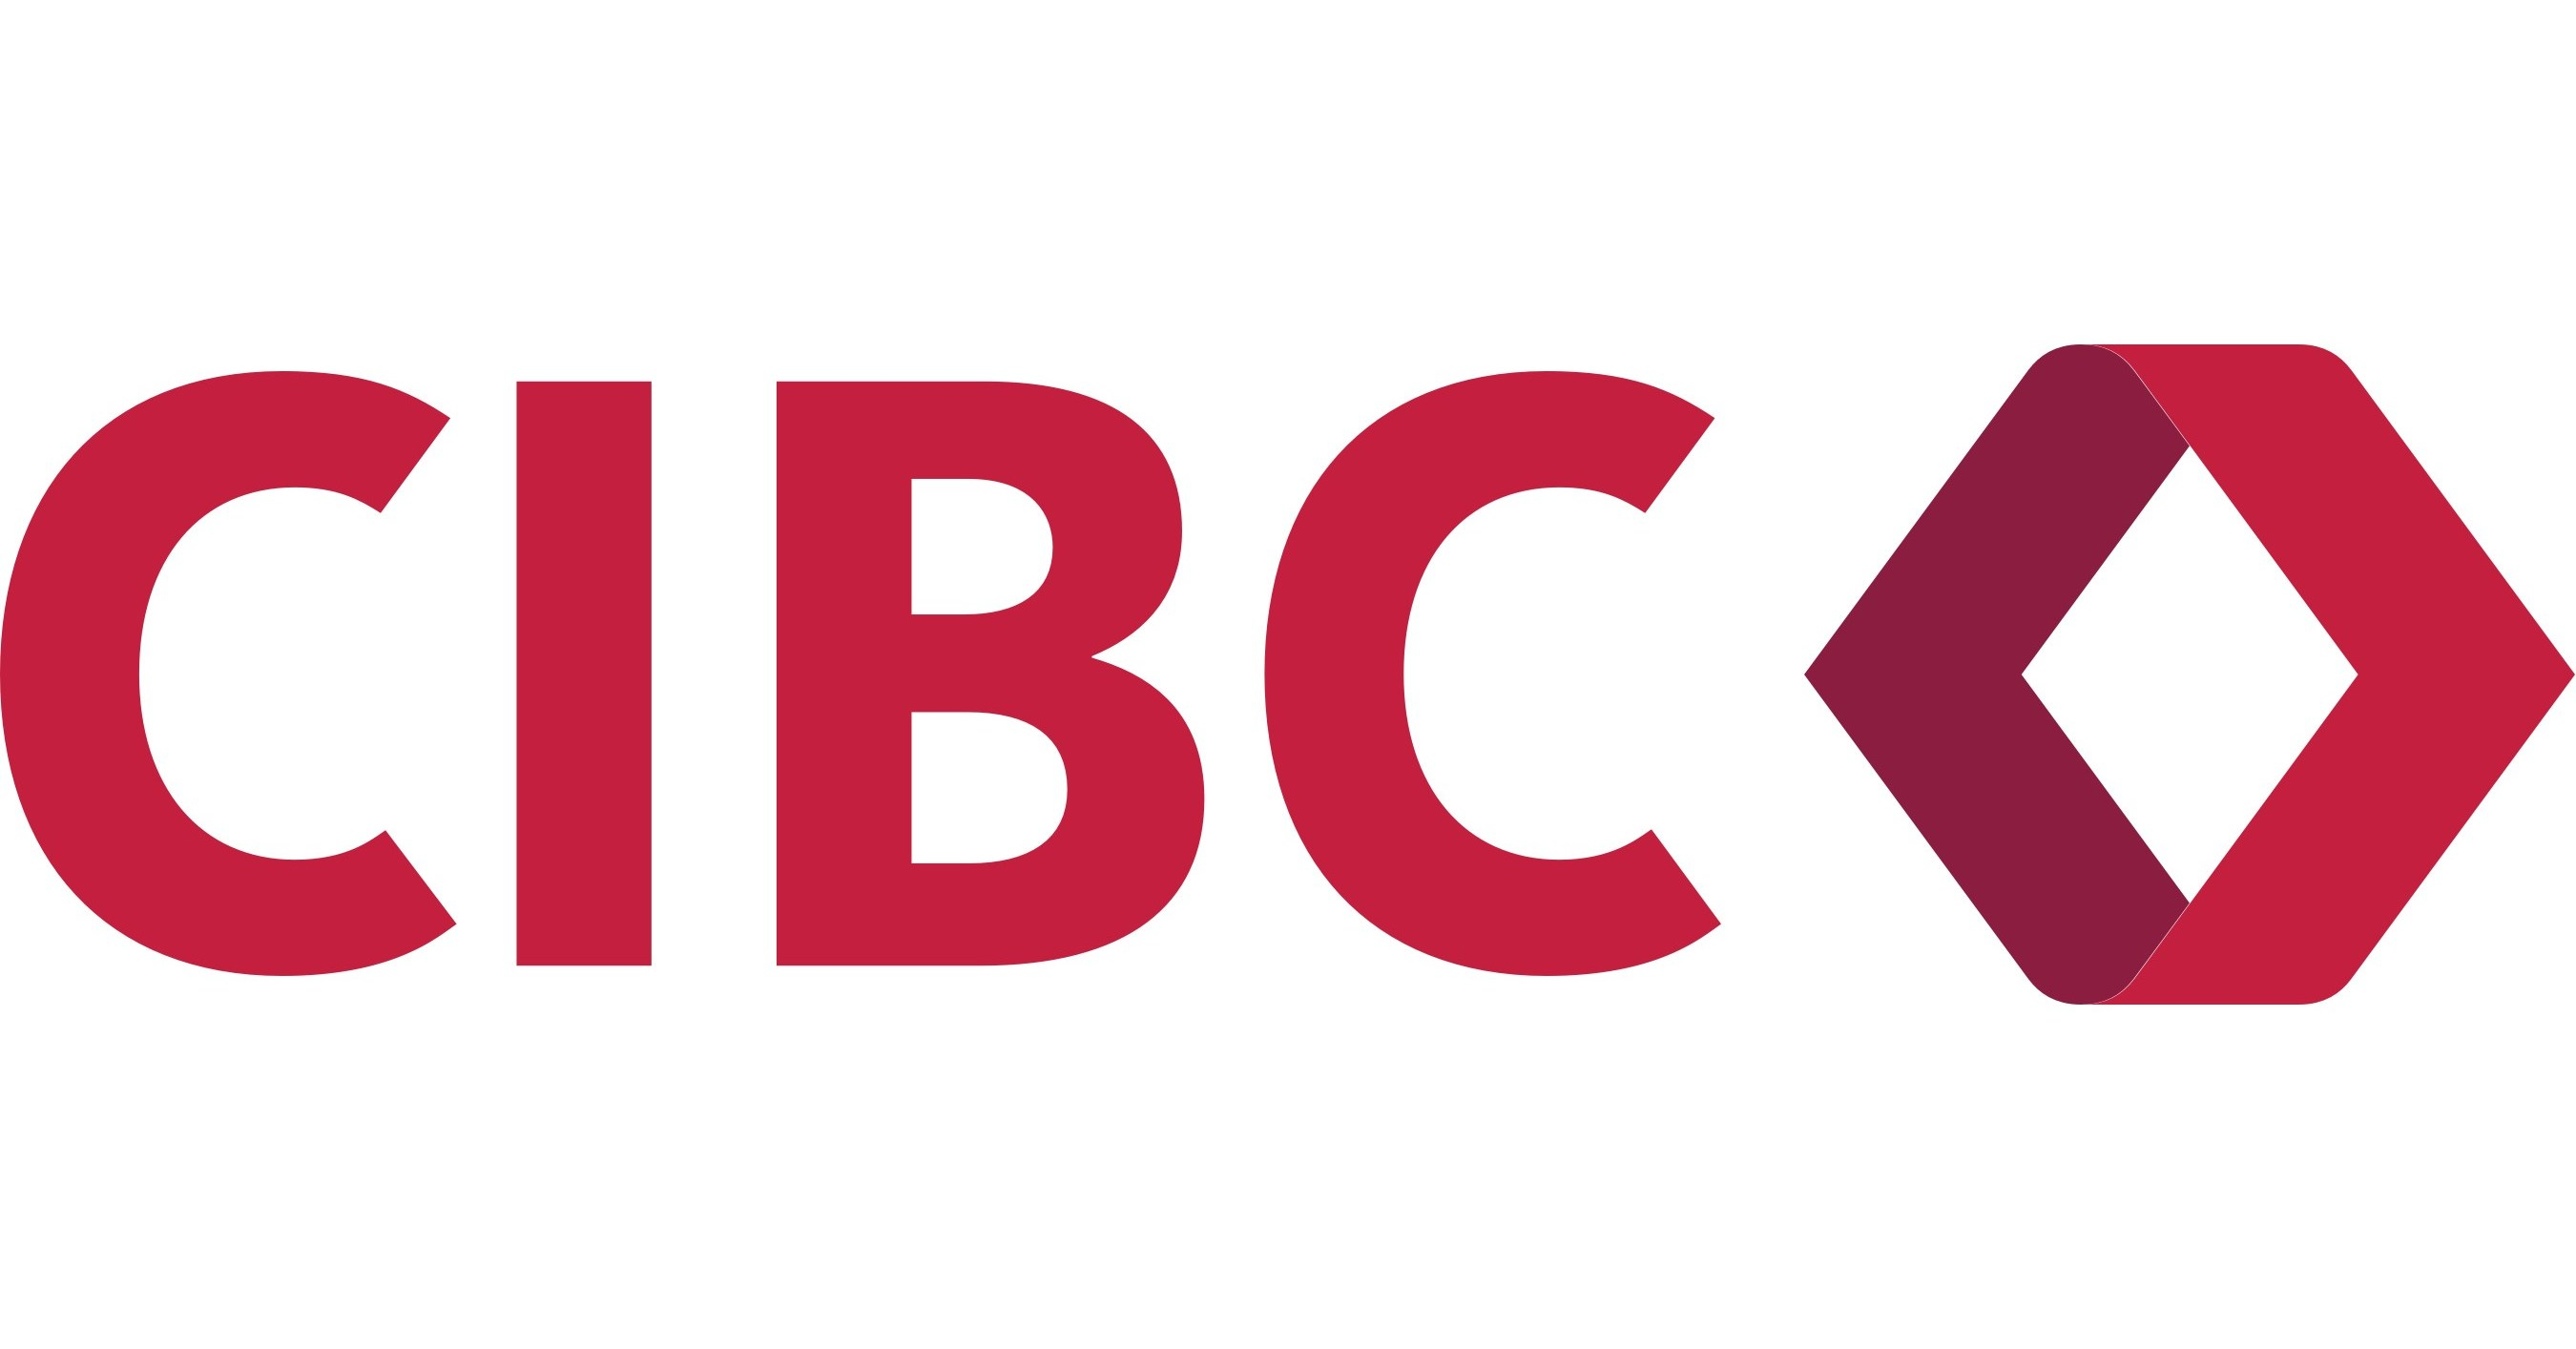 CIBC unveils new look symbolizing the bank's purpose of helping make  clients' ambitions a reality